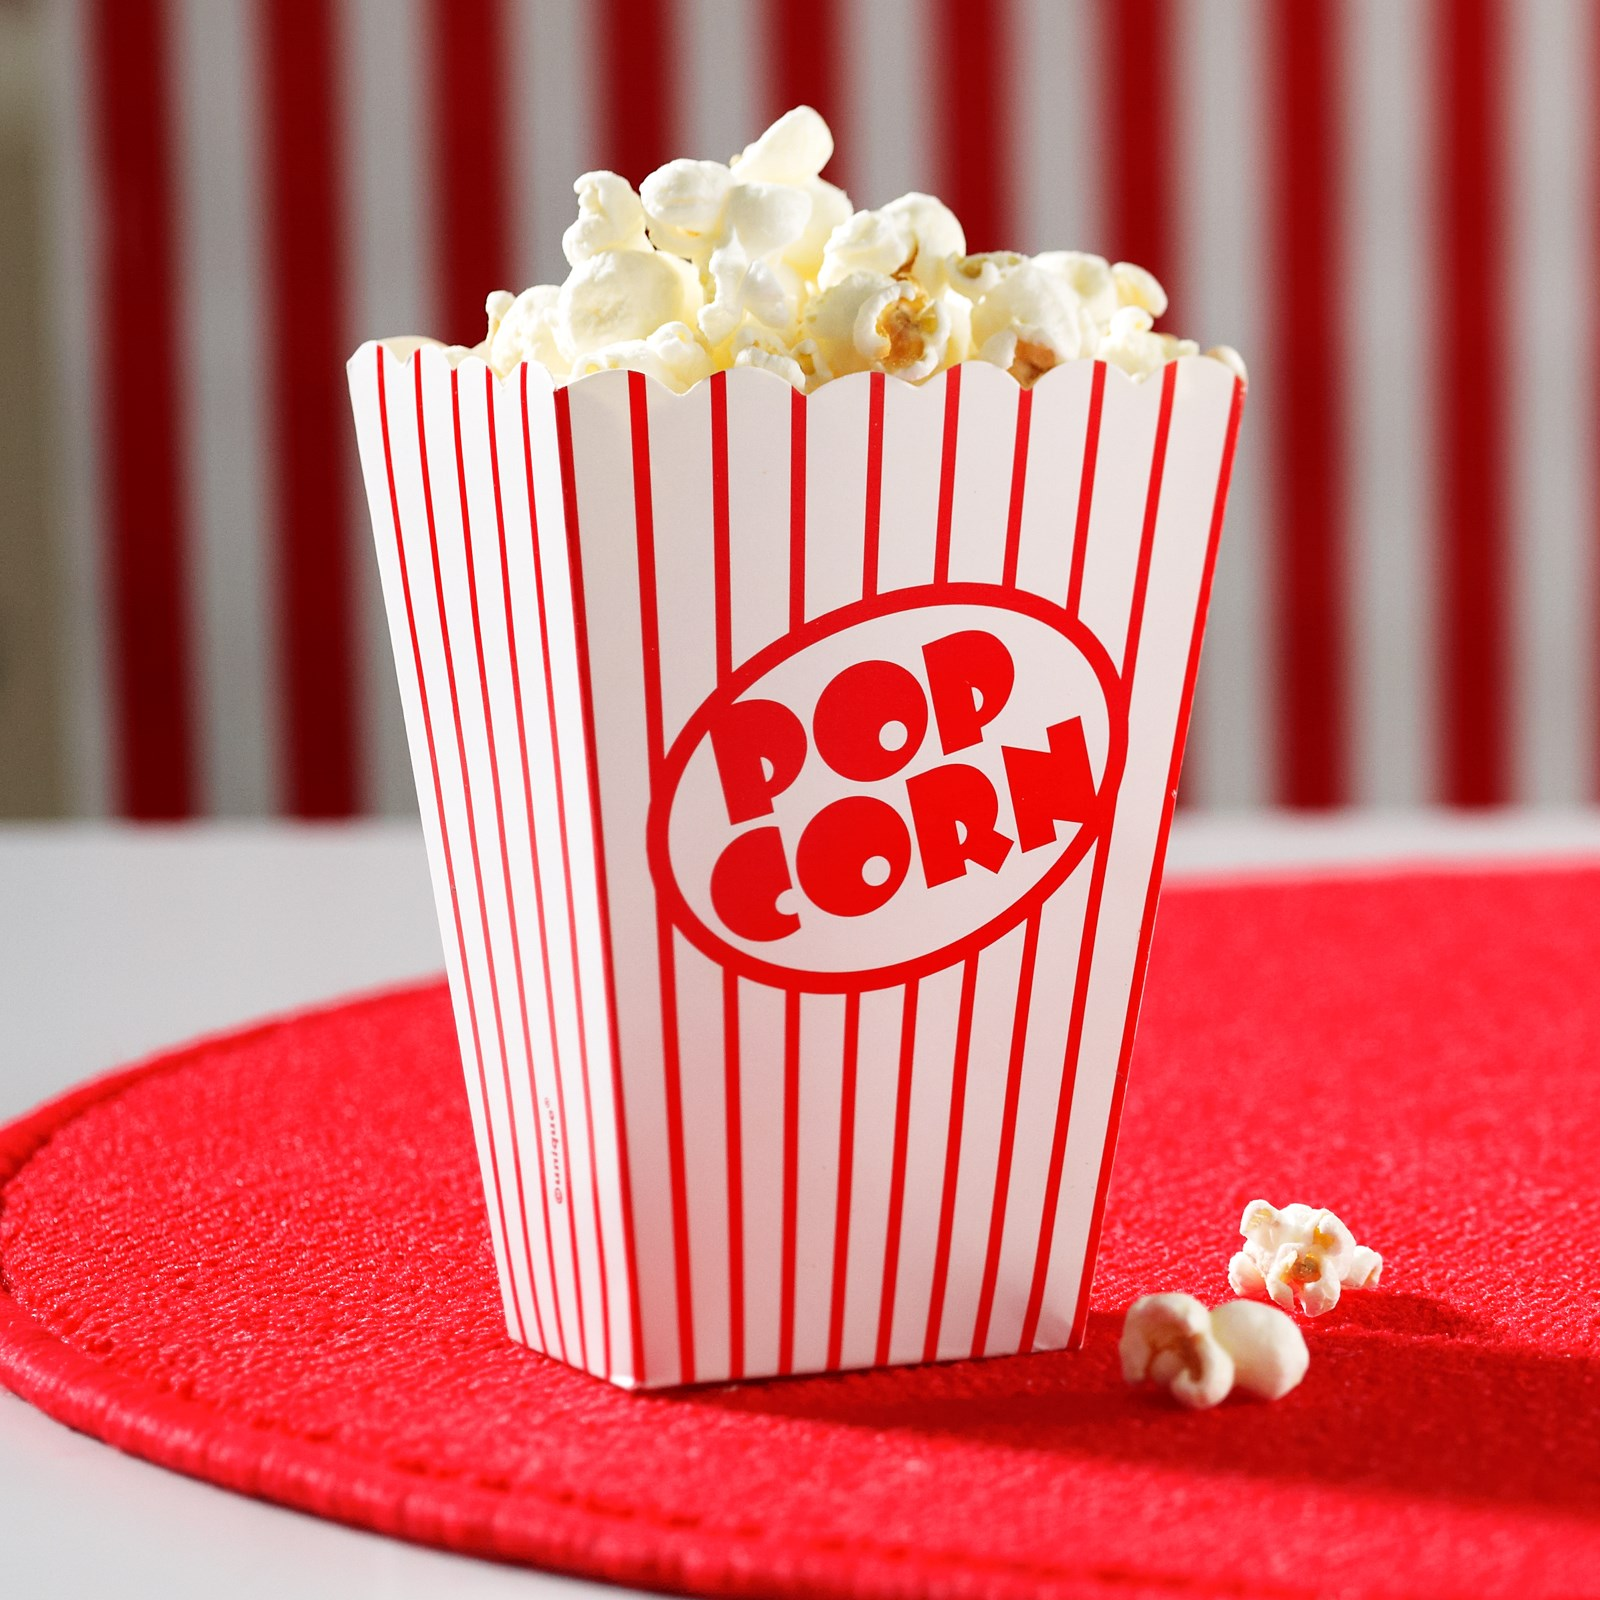 Popcorn Boxes 8 Count Buycostumes Com